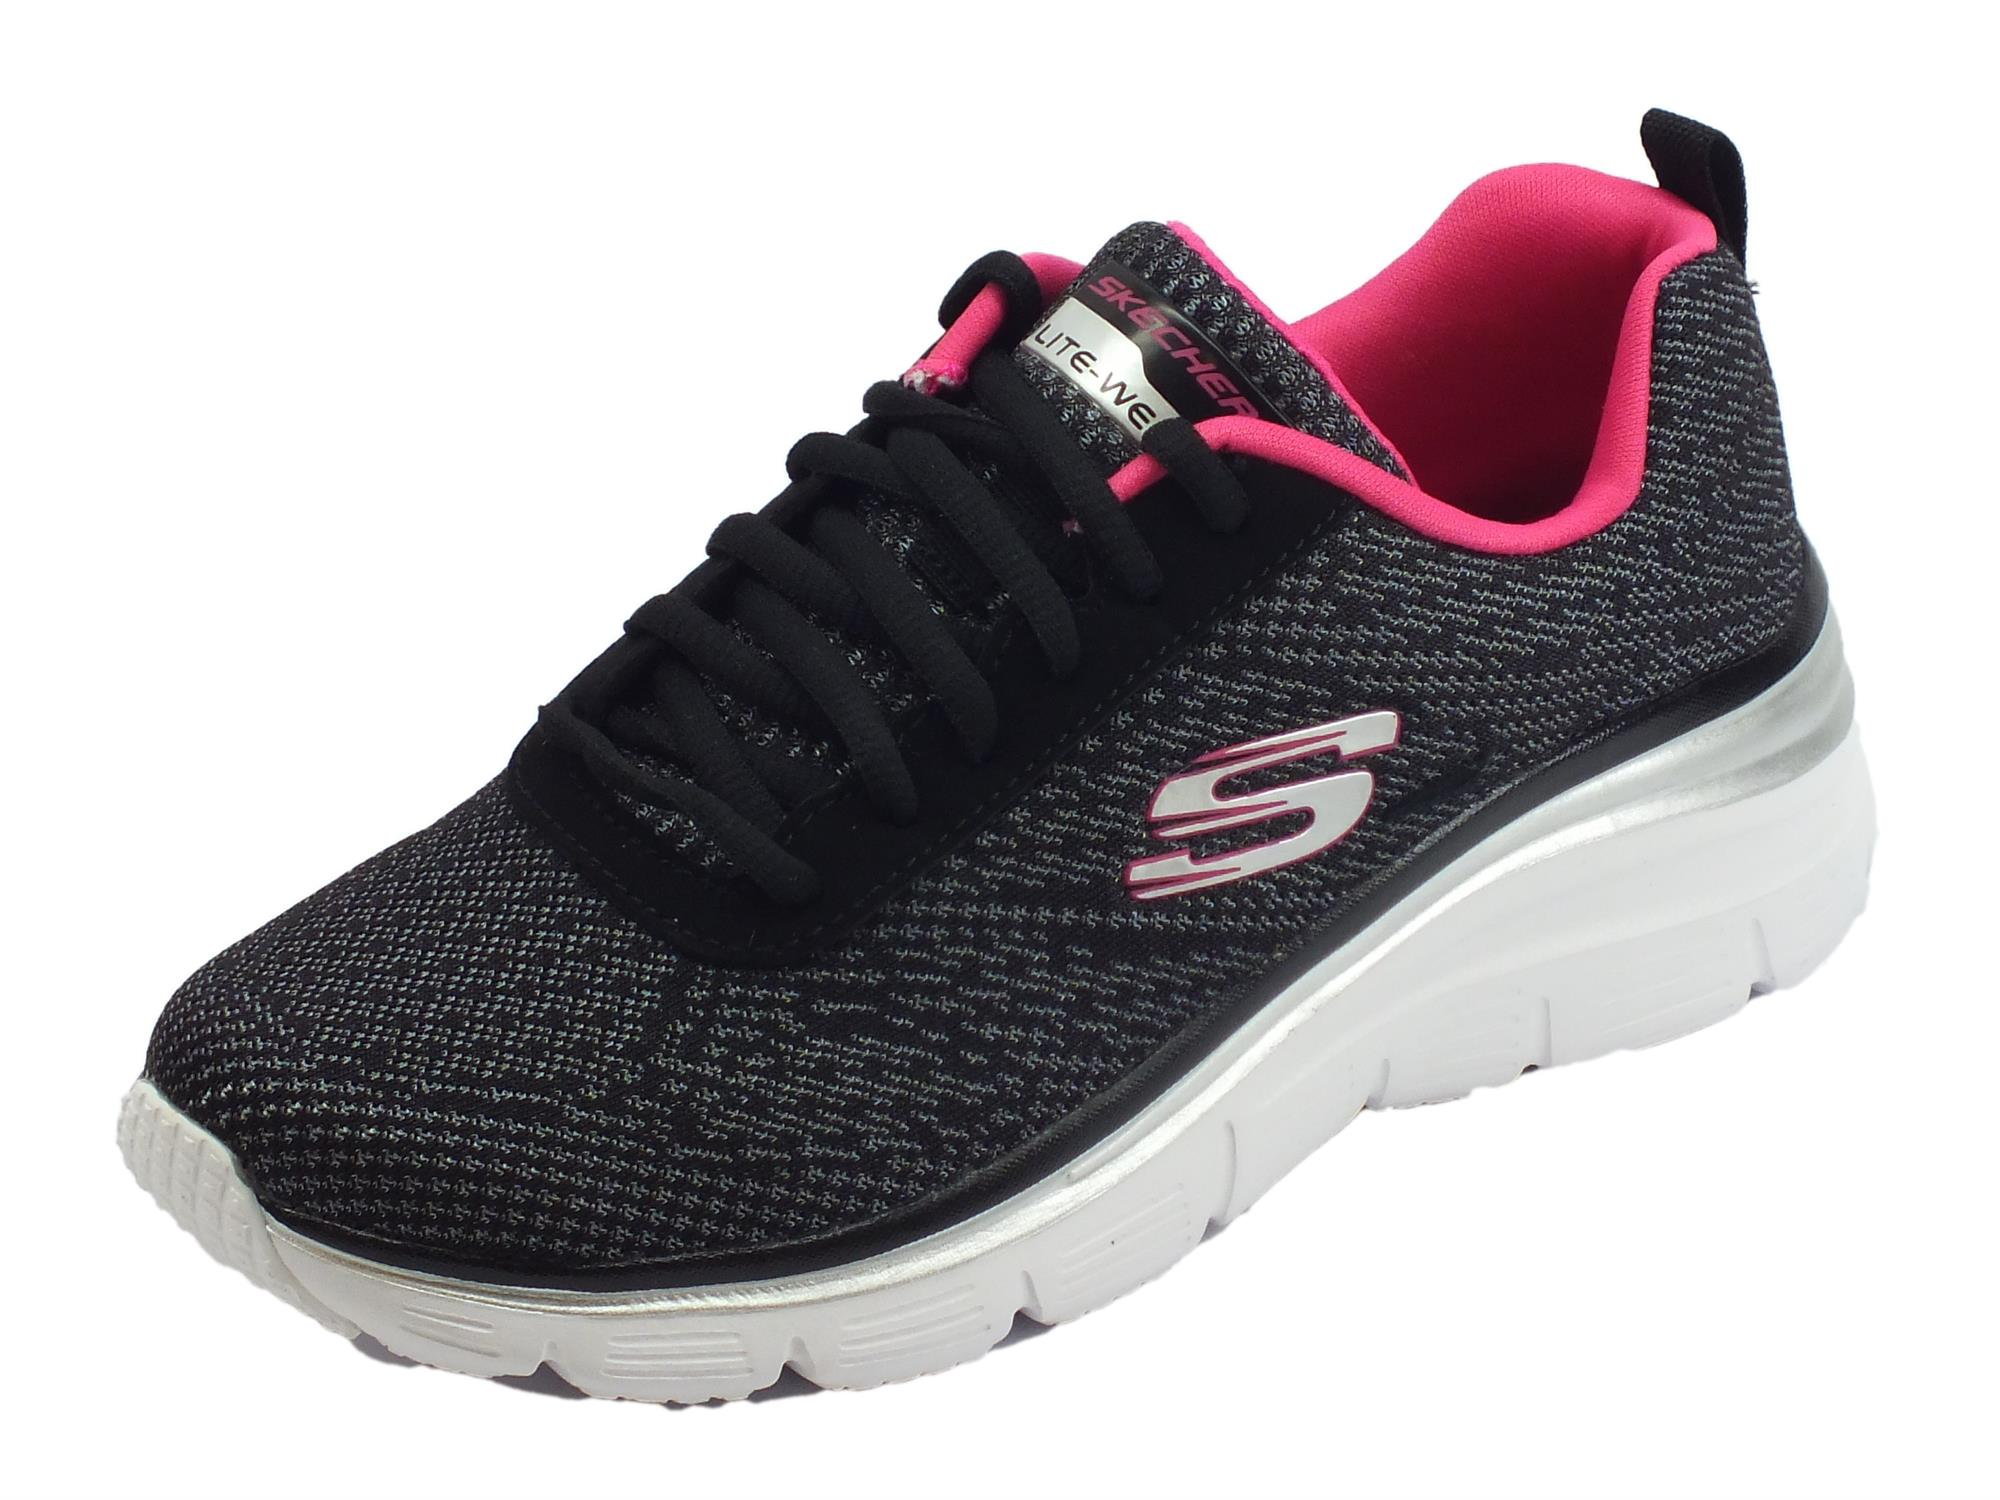 Skechers Fashion Fit Bold Boundaries Scarpe Sportive per donna nere e rosa acceso